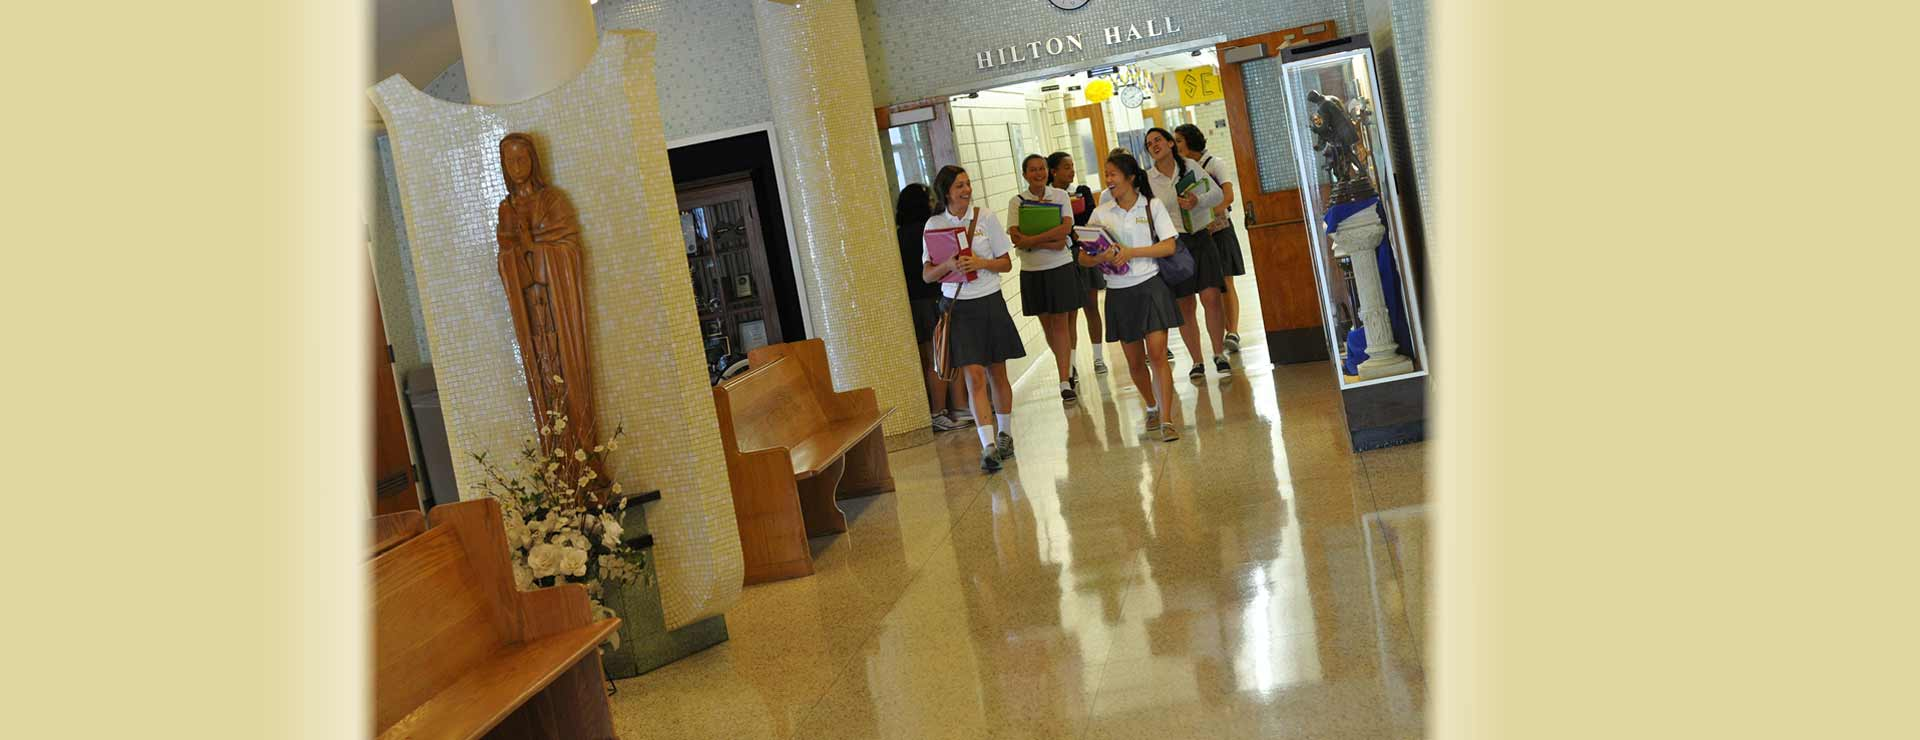 Students walking through the halls of Notre Dame Academy catholic all-girls school in Covington, Northern Kentucky.